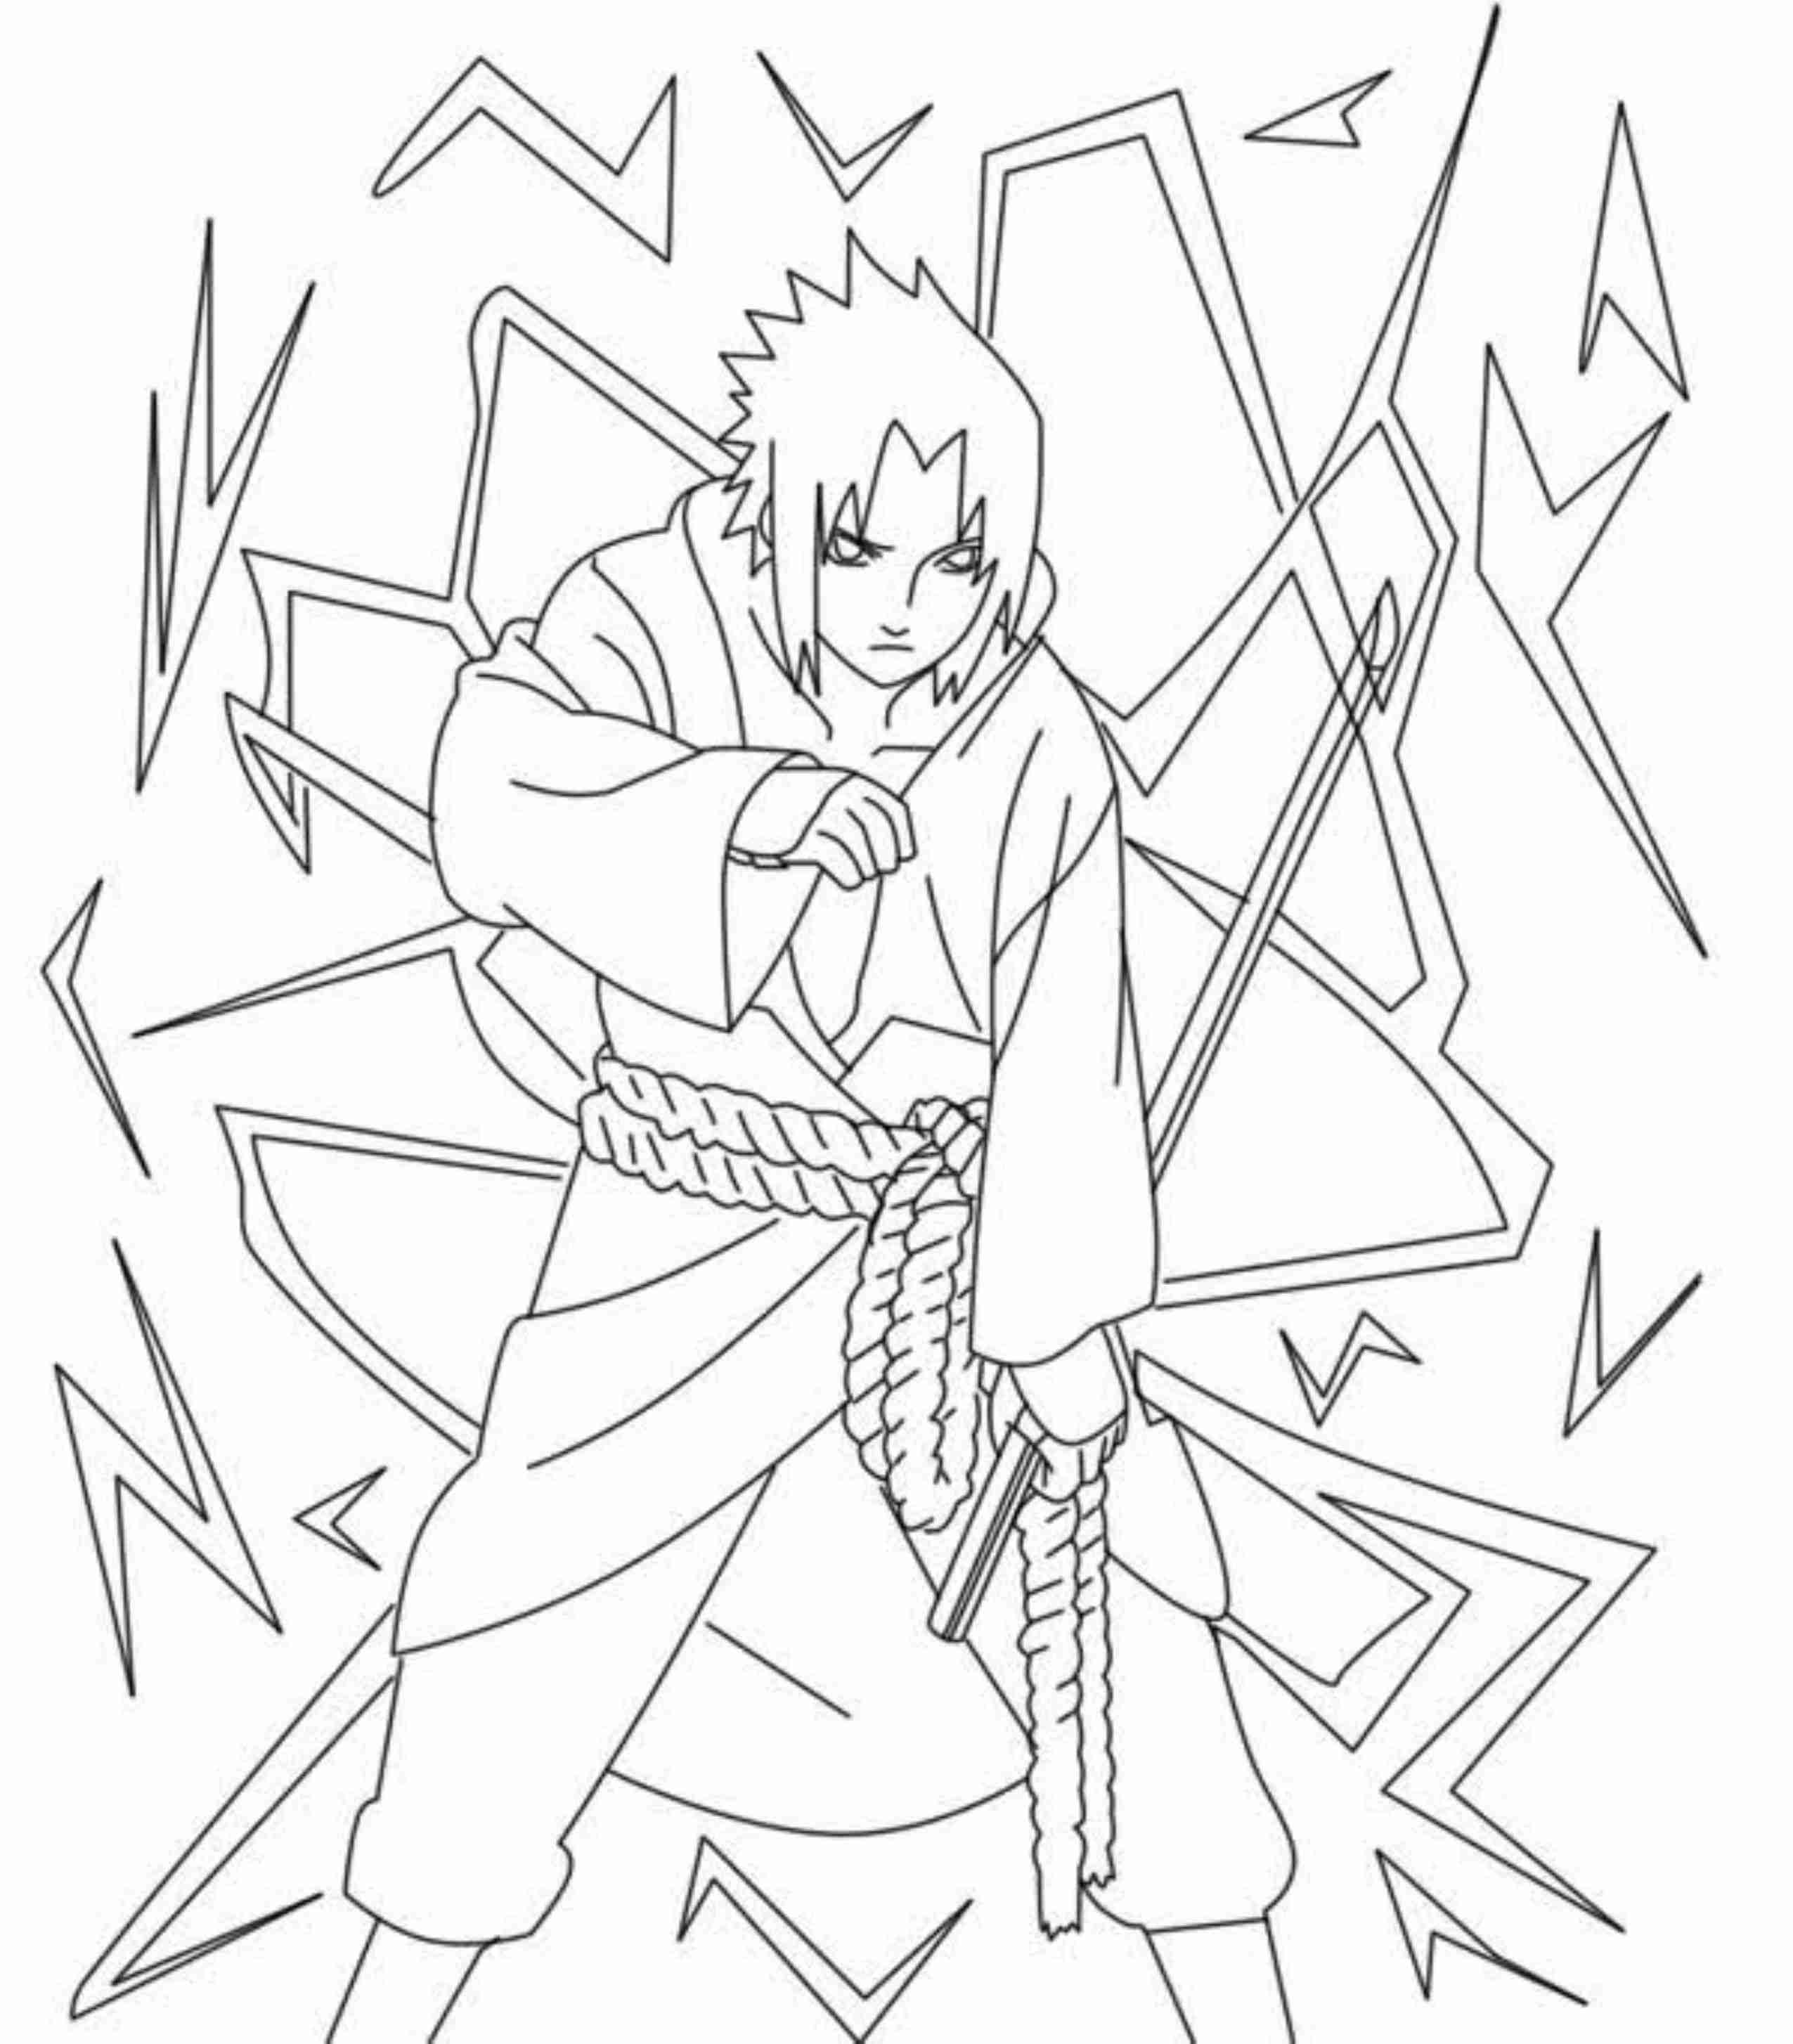 Naruto Sage Mode Coloring Pages at GetDrawings.com | Free for ...